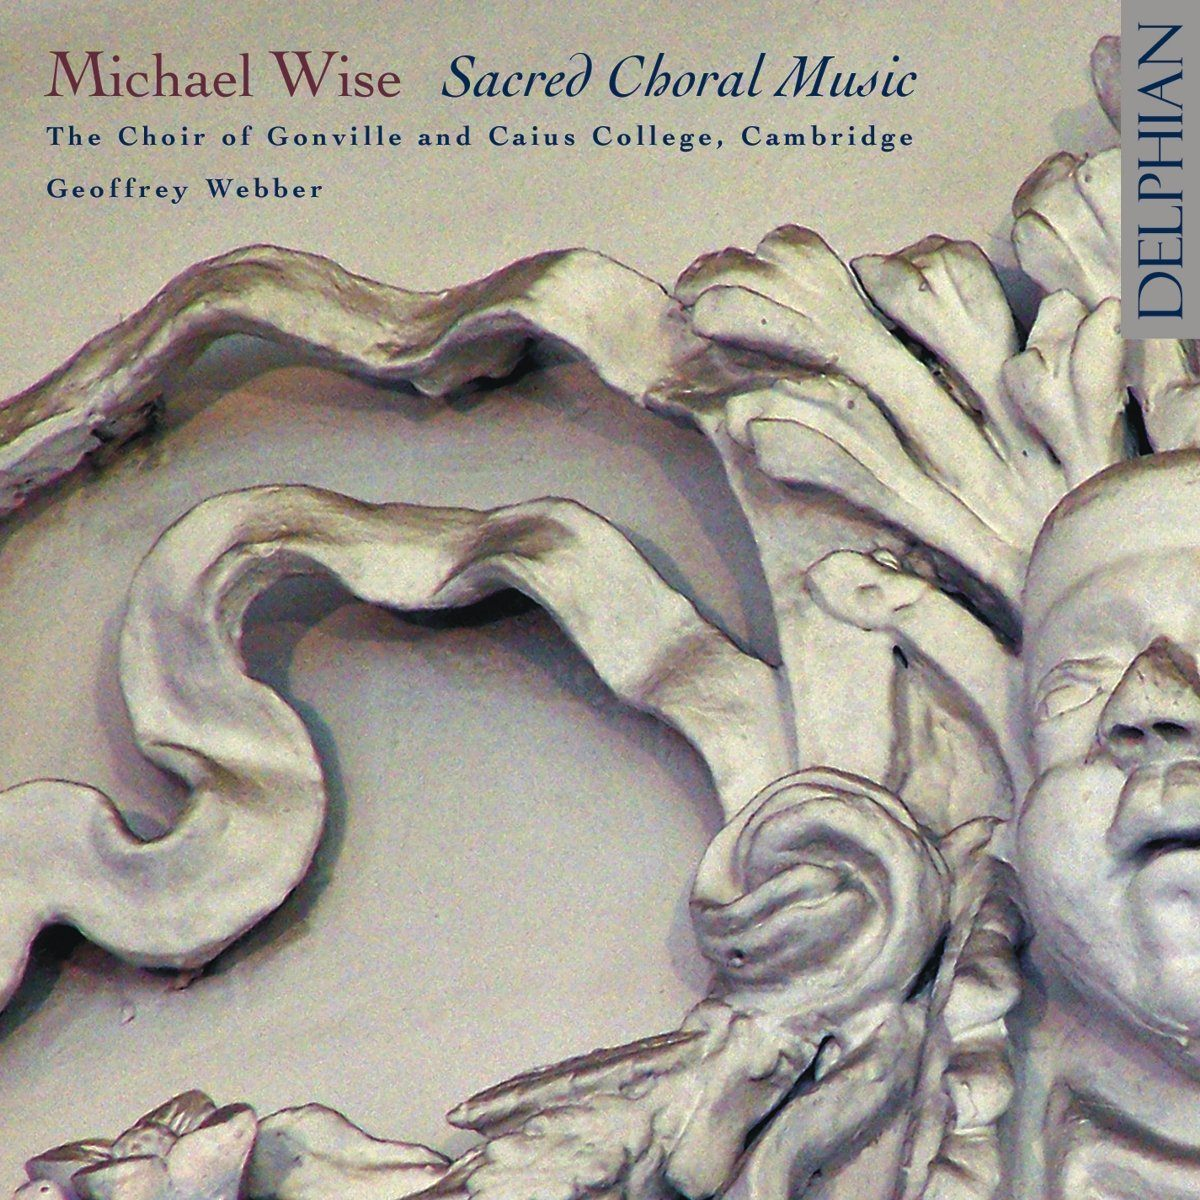 Michael Wise (c.1648–1687): Sacred Choral Music CD Delphian Records